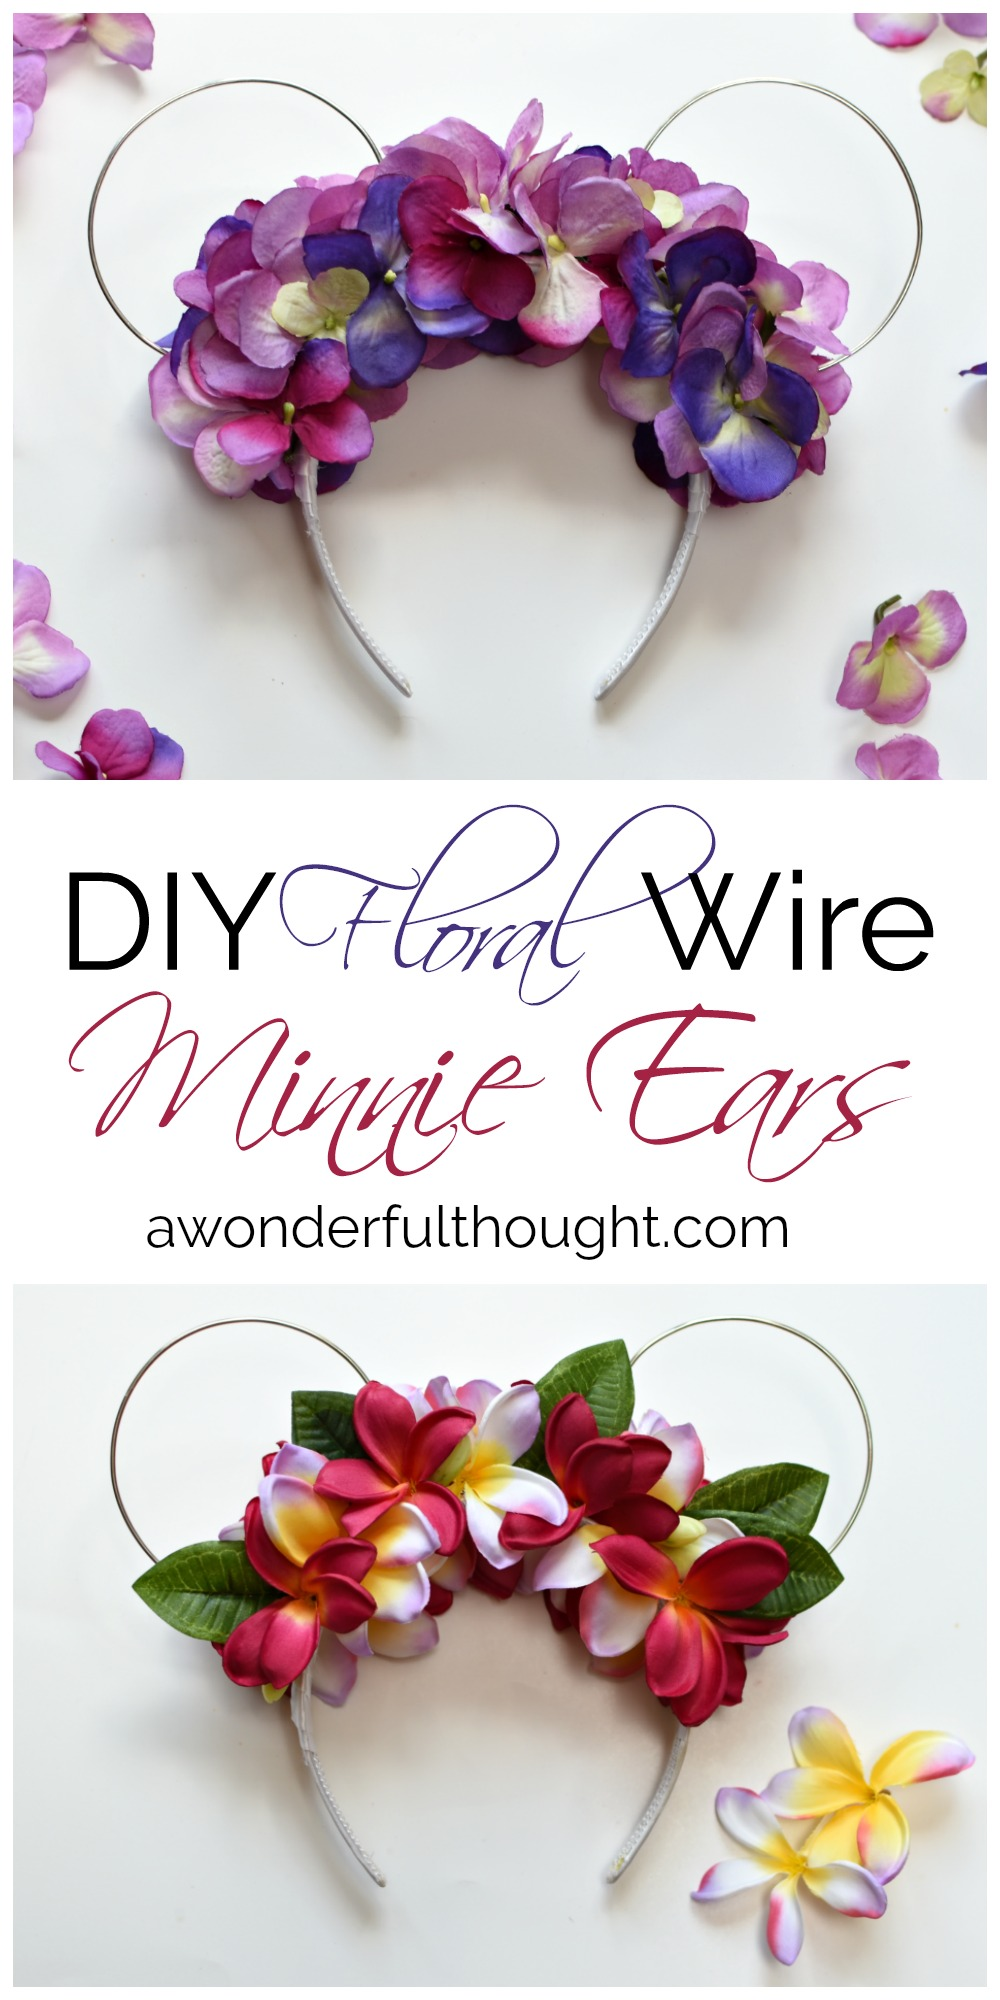 Diy floral wire minnie ears a wonderful thought diy floral wire minnie ears awonderfulthought izmirmasajfo